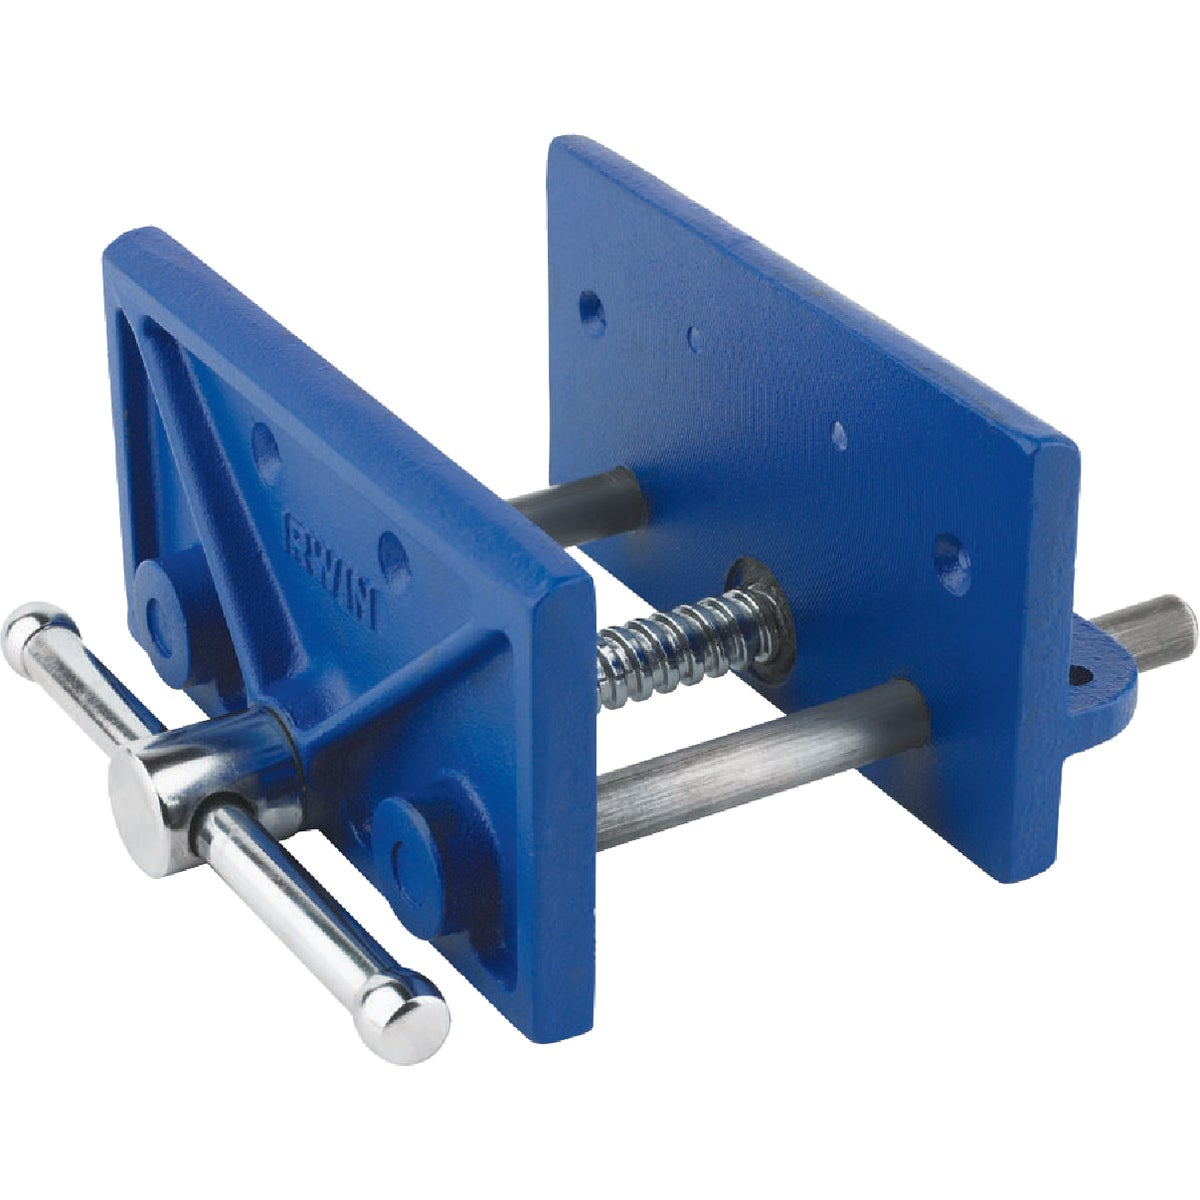 "6-1/2"" WOODWORKER'S VISE - 226361 by Irwin Industr Tool"